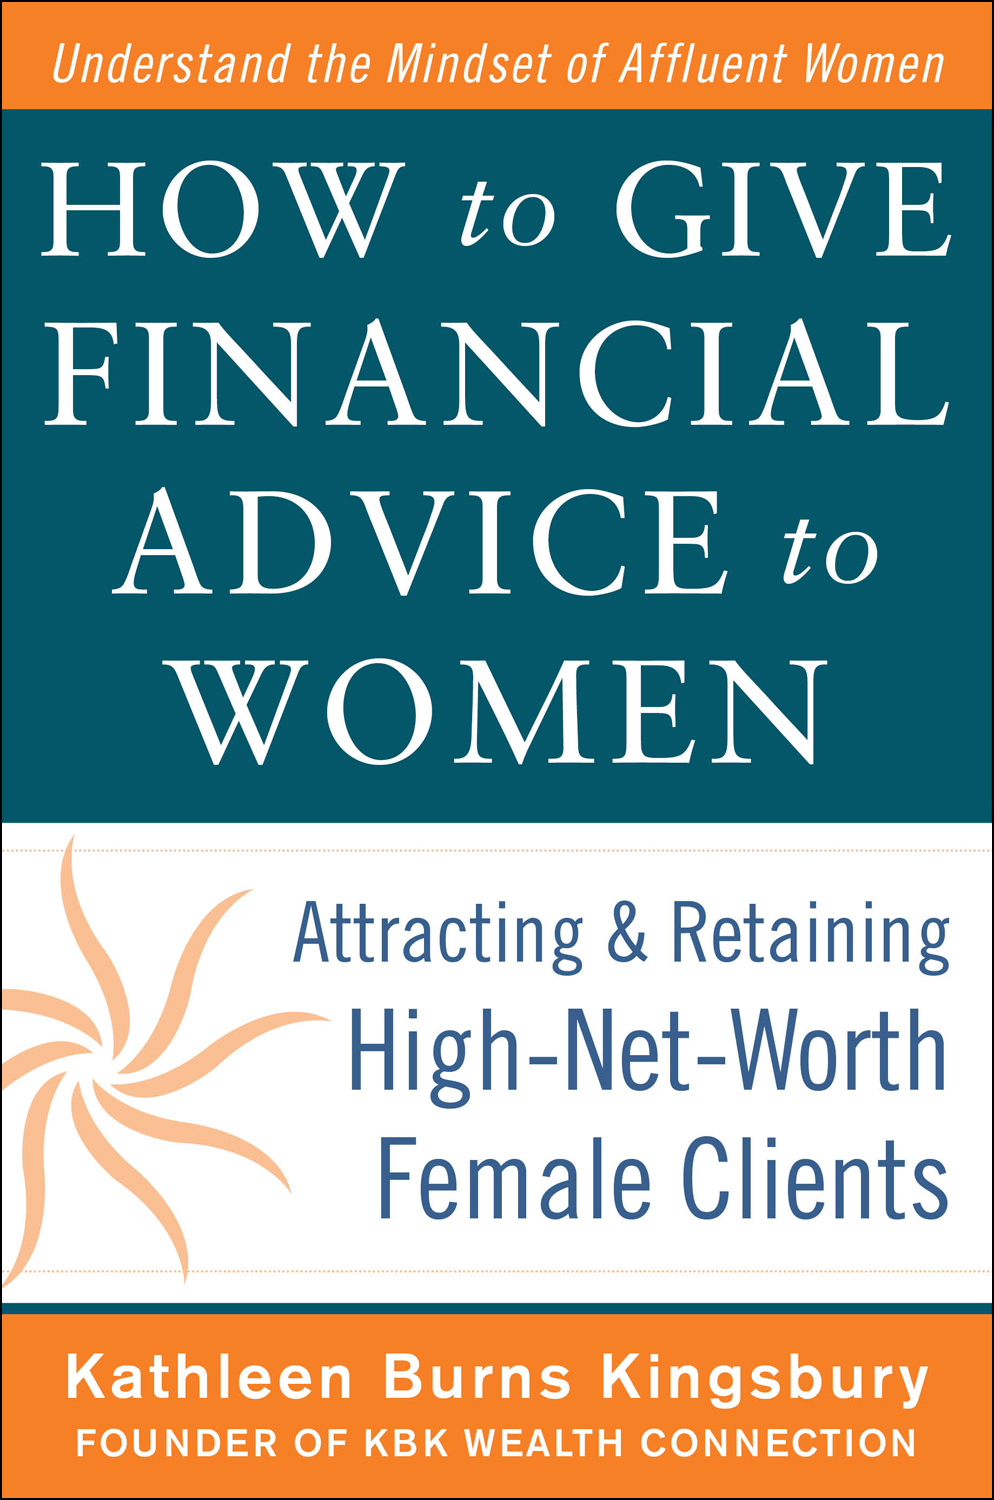 """""""Financial Advice to Women: Attracting & Retaining High-Net-Worth Female Clients"""" by Kathleen Burns Kingsbury"""